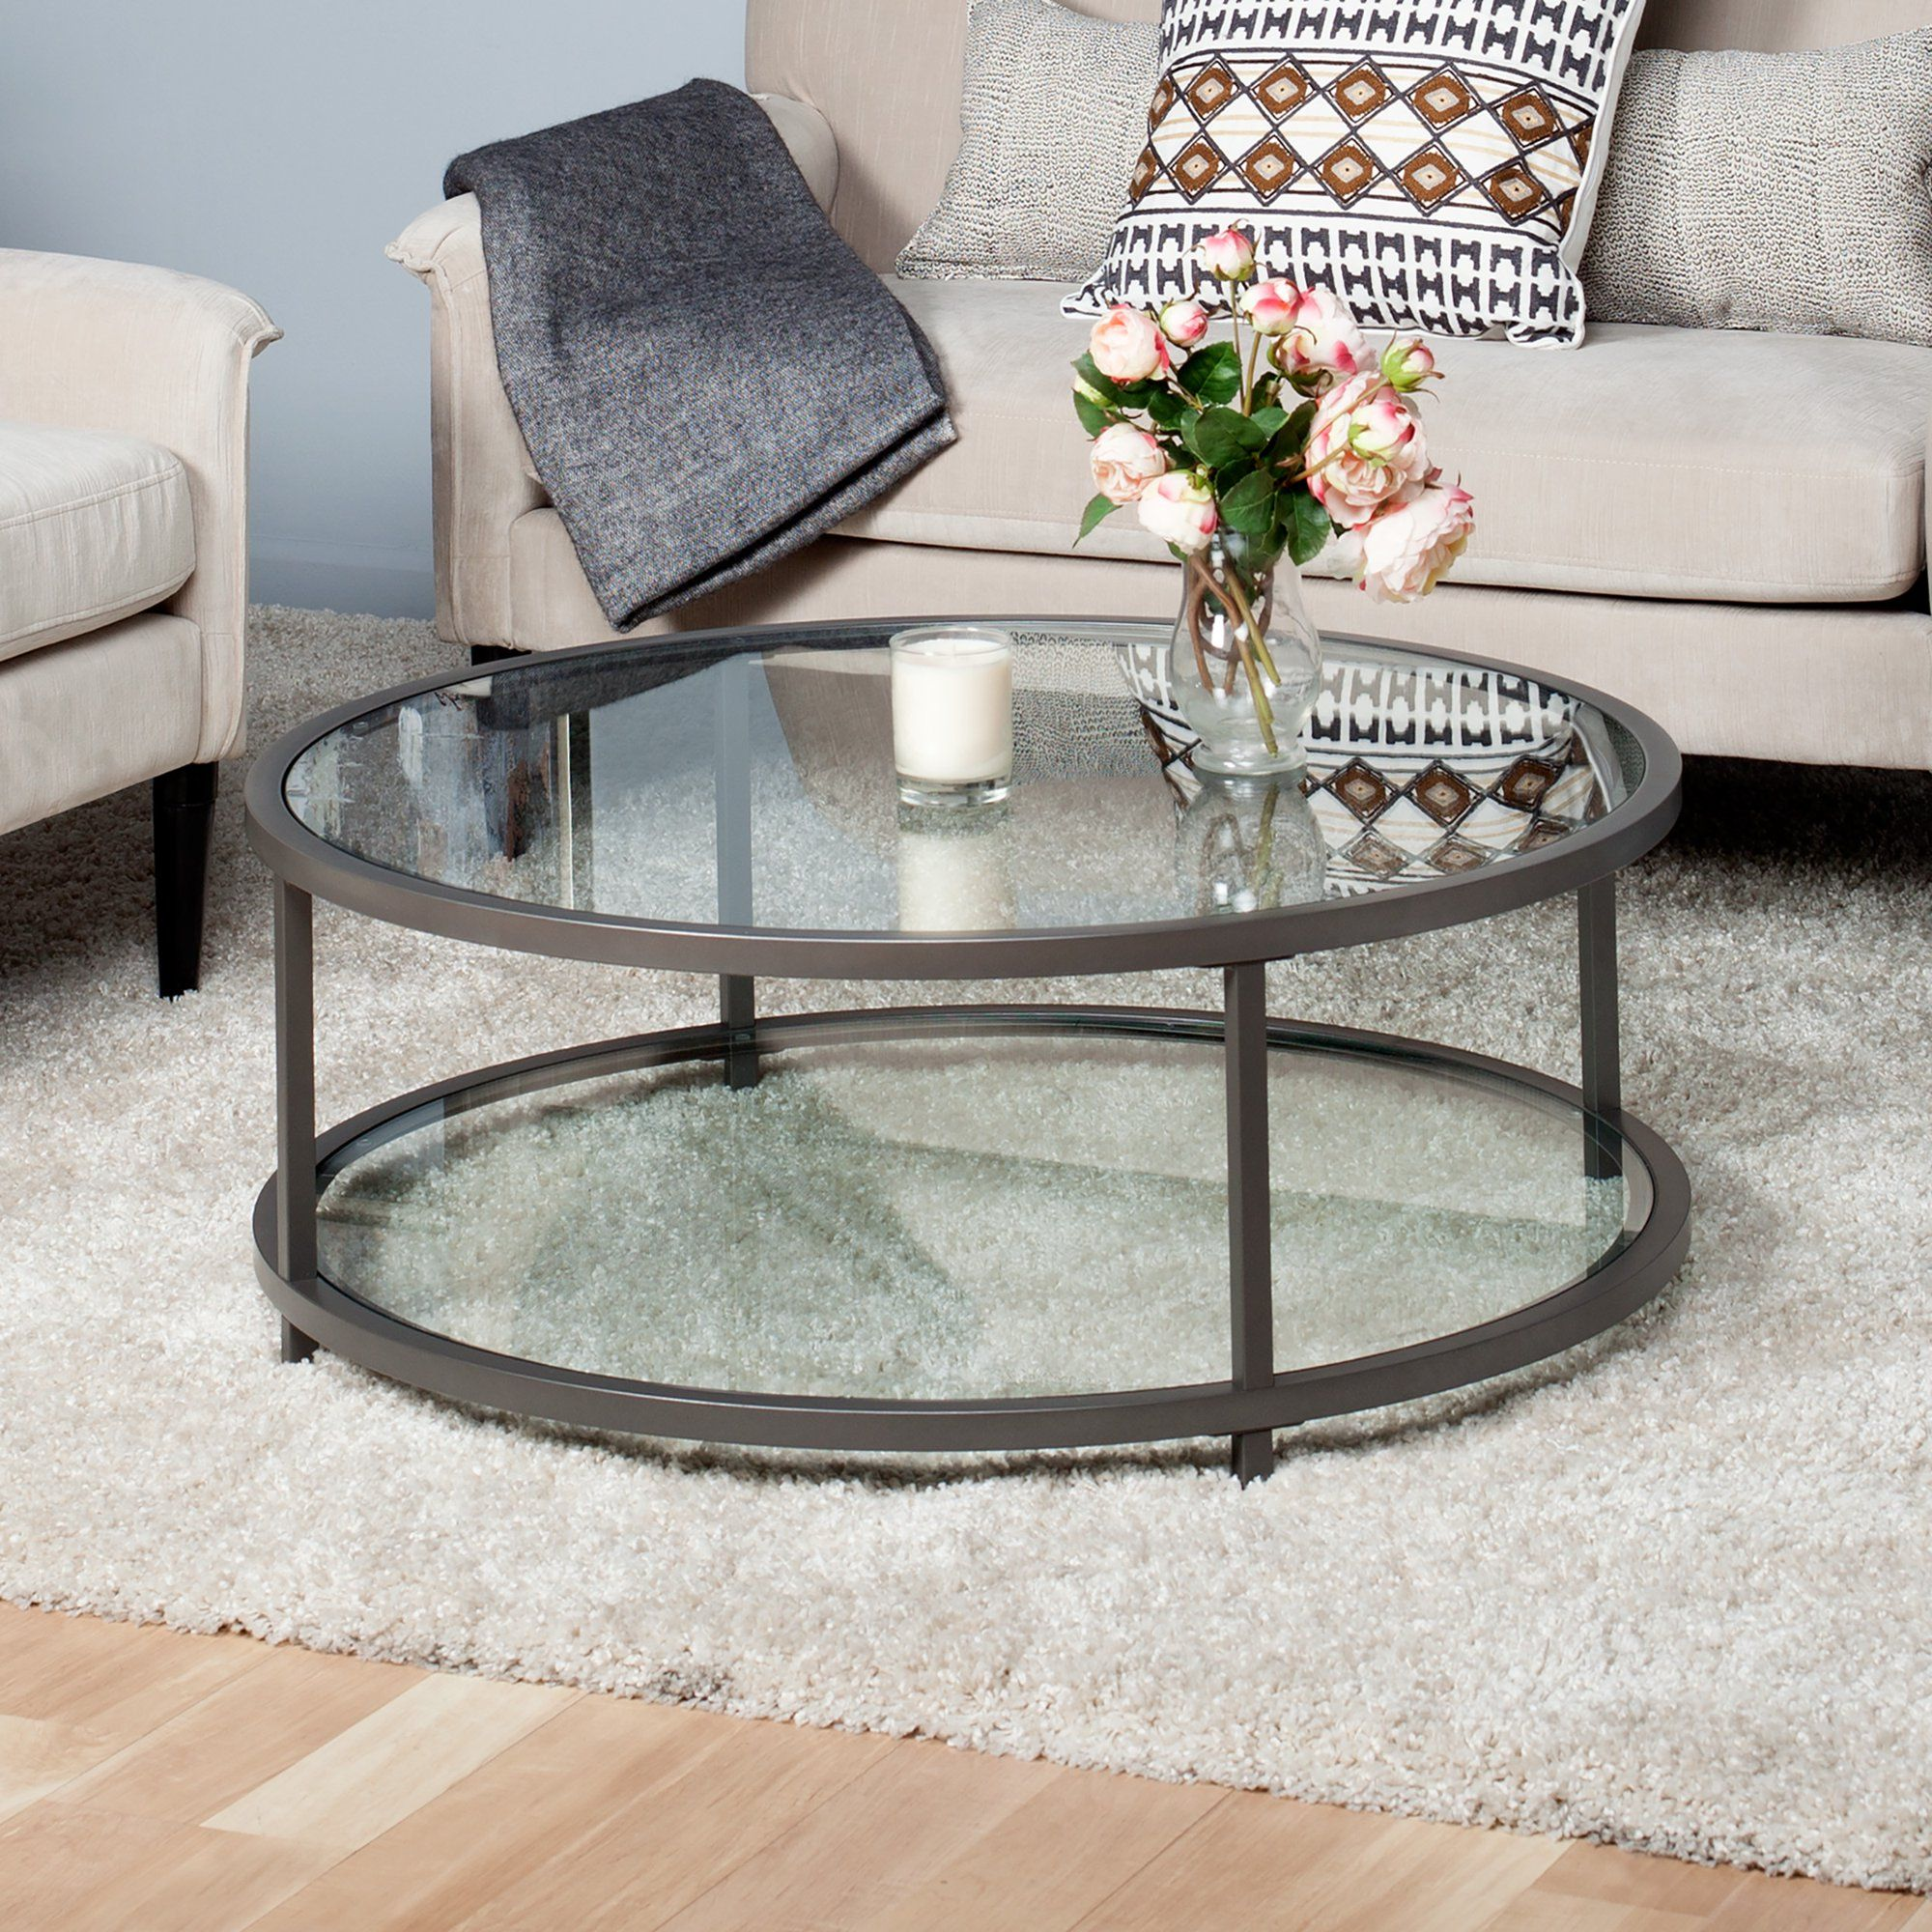 Studio Designs Home Camber 2 Tier Modern 38 Round Coffee Table In Pewter Walmart Com Coffee Table Round Coffee Table Round Glass Coffee Table [ 2000 x 2000 Pixel ]